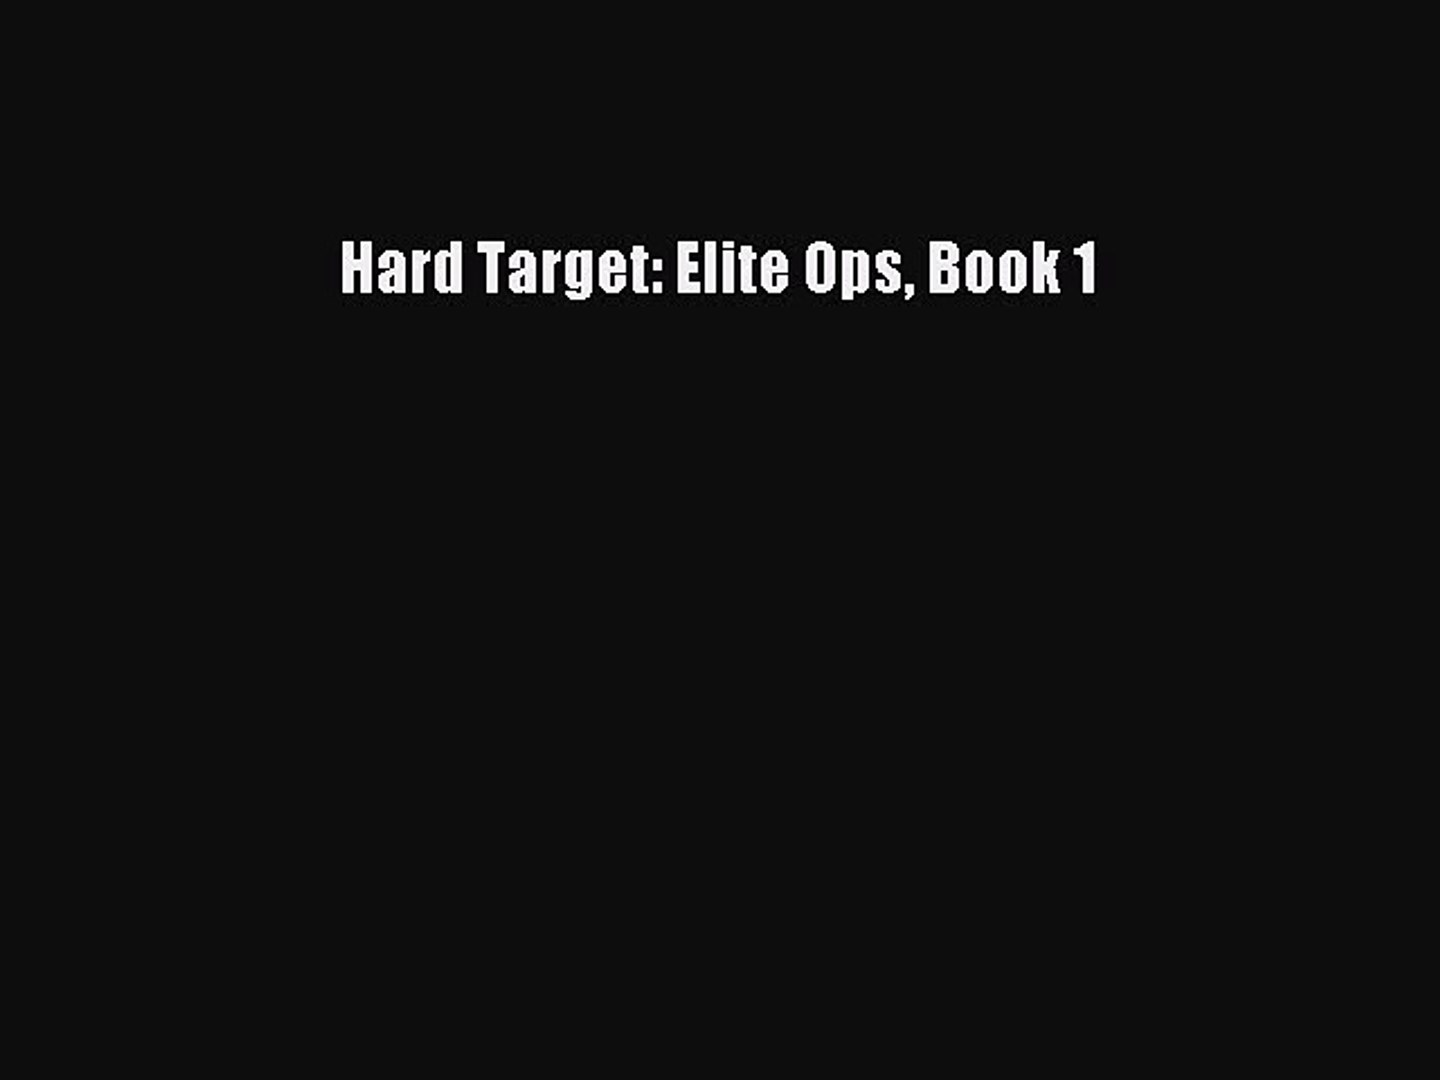 Personal Target - An Elite Ops Novel